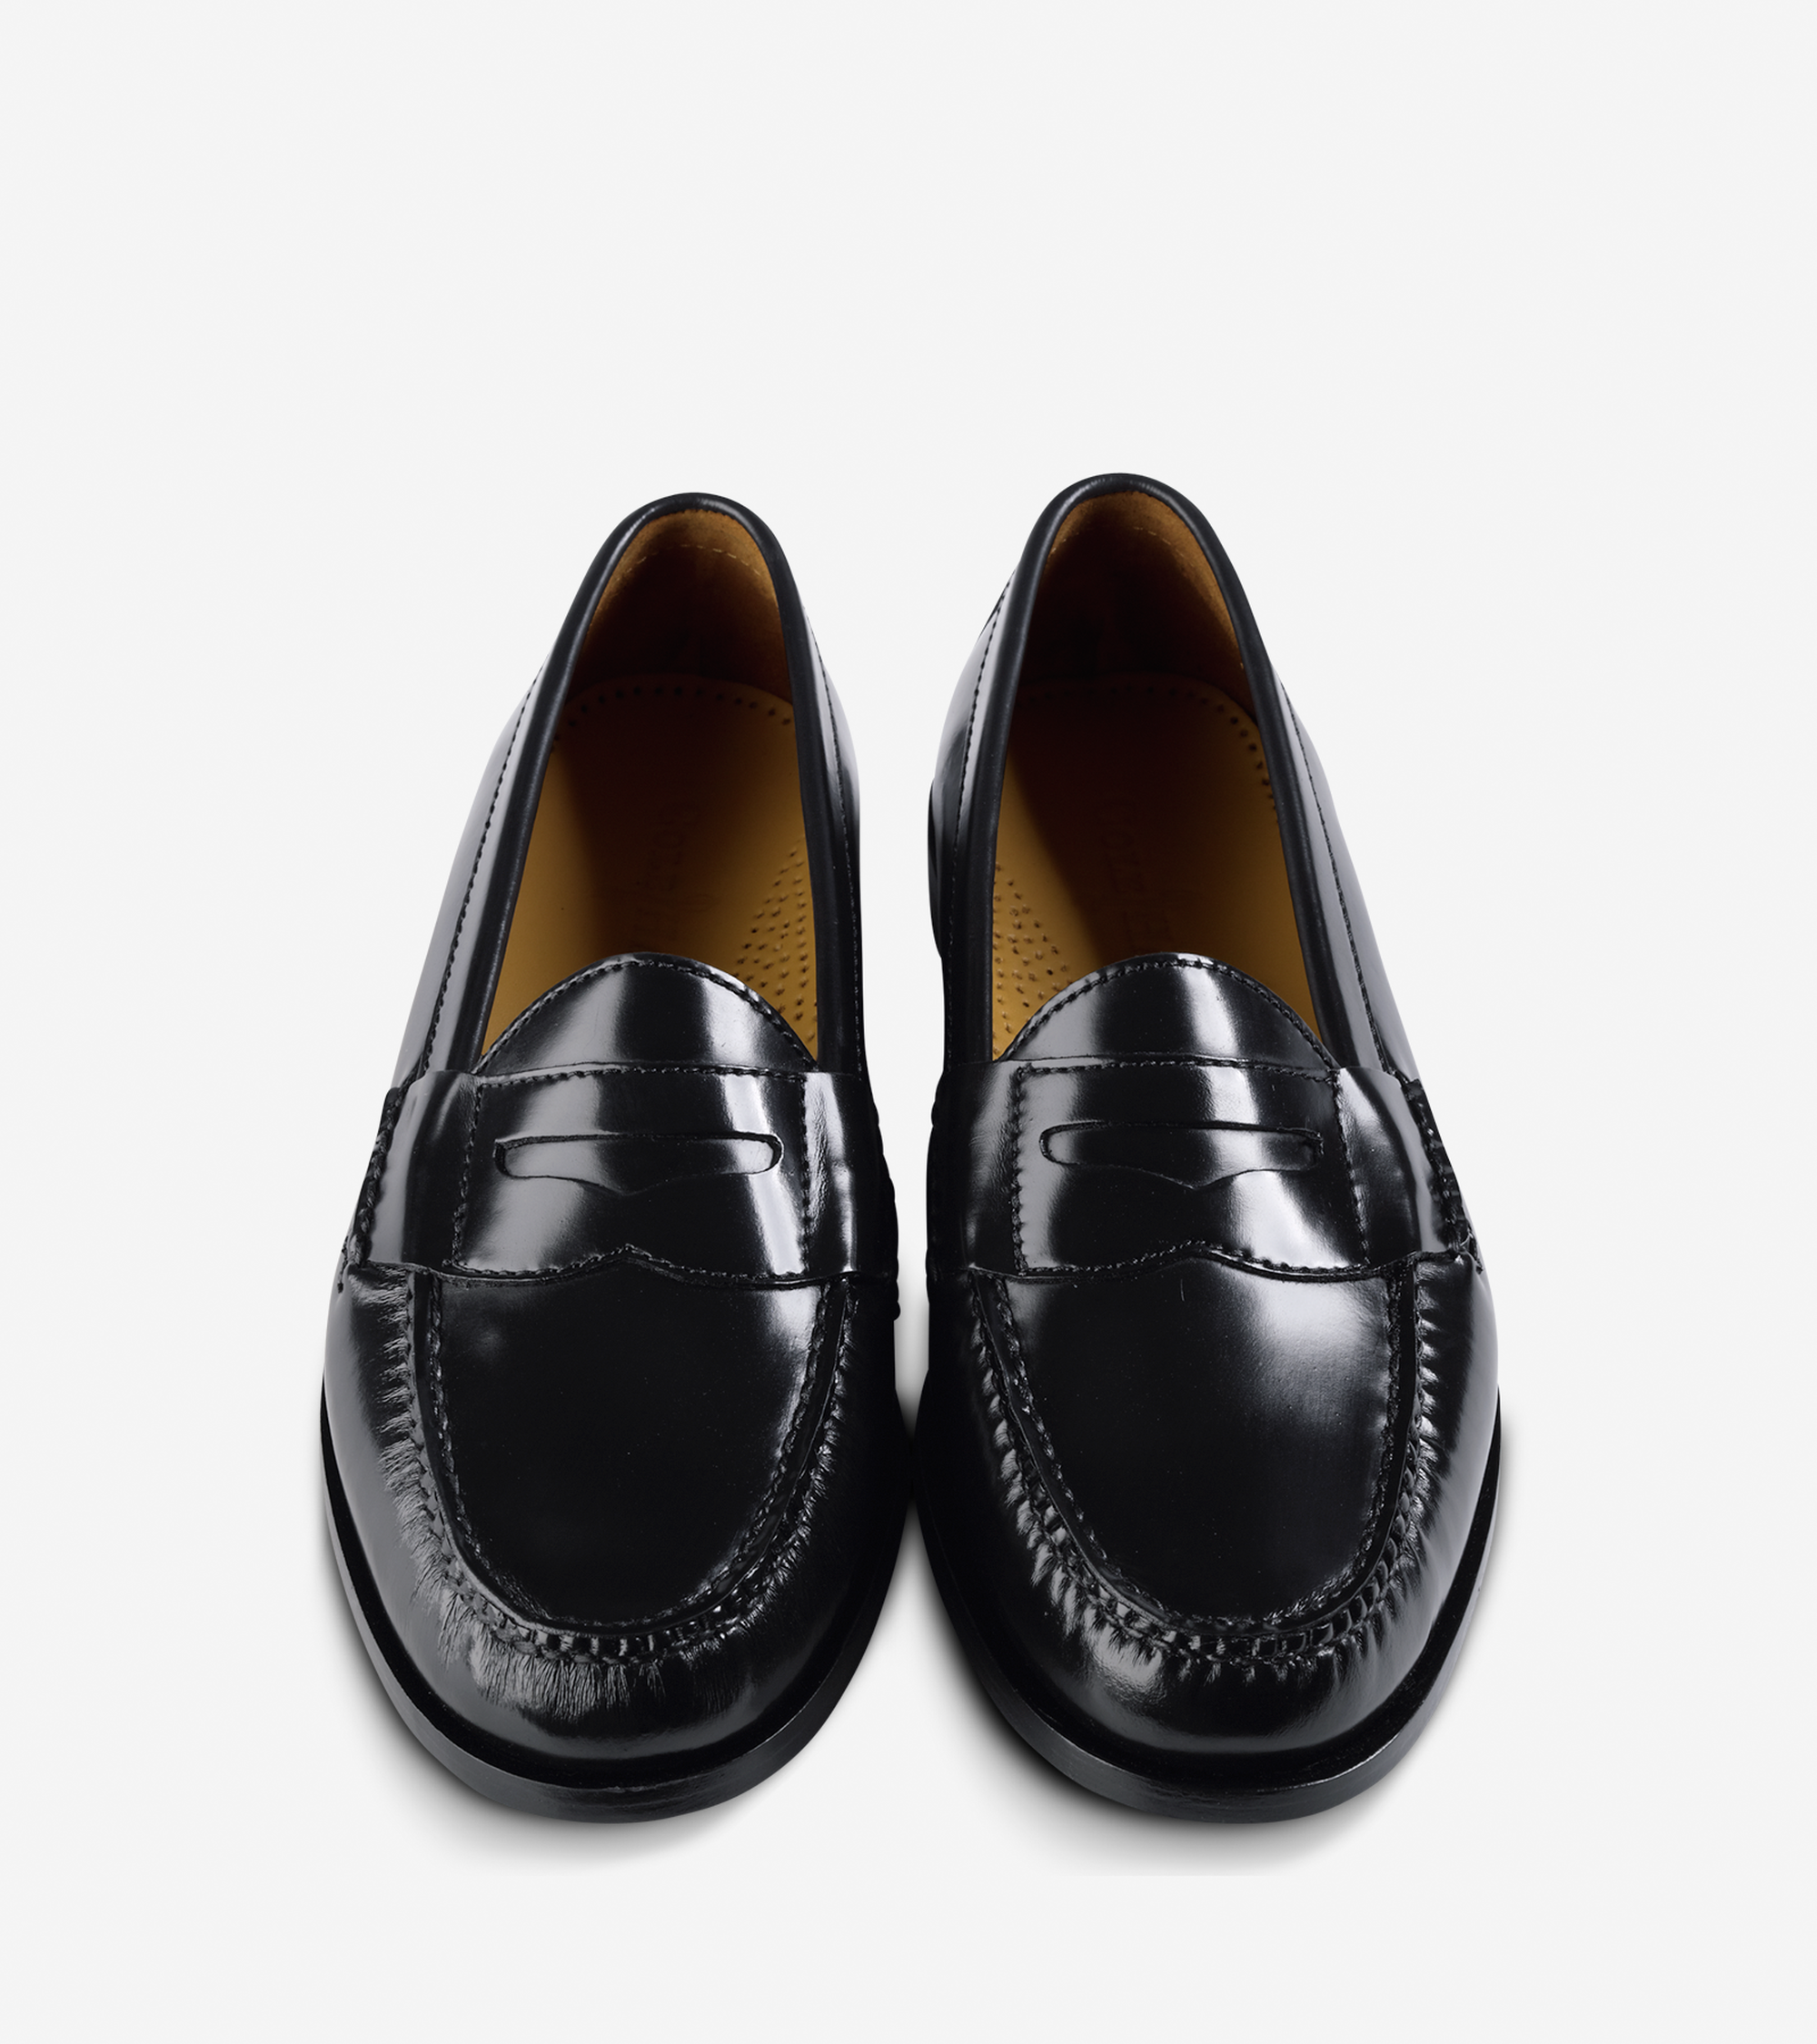 953496dbc73 Pinch Penny Loafer · Pinch Penny Loafer ...